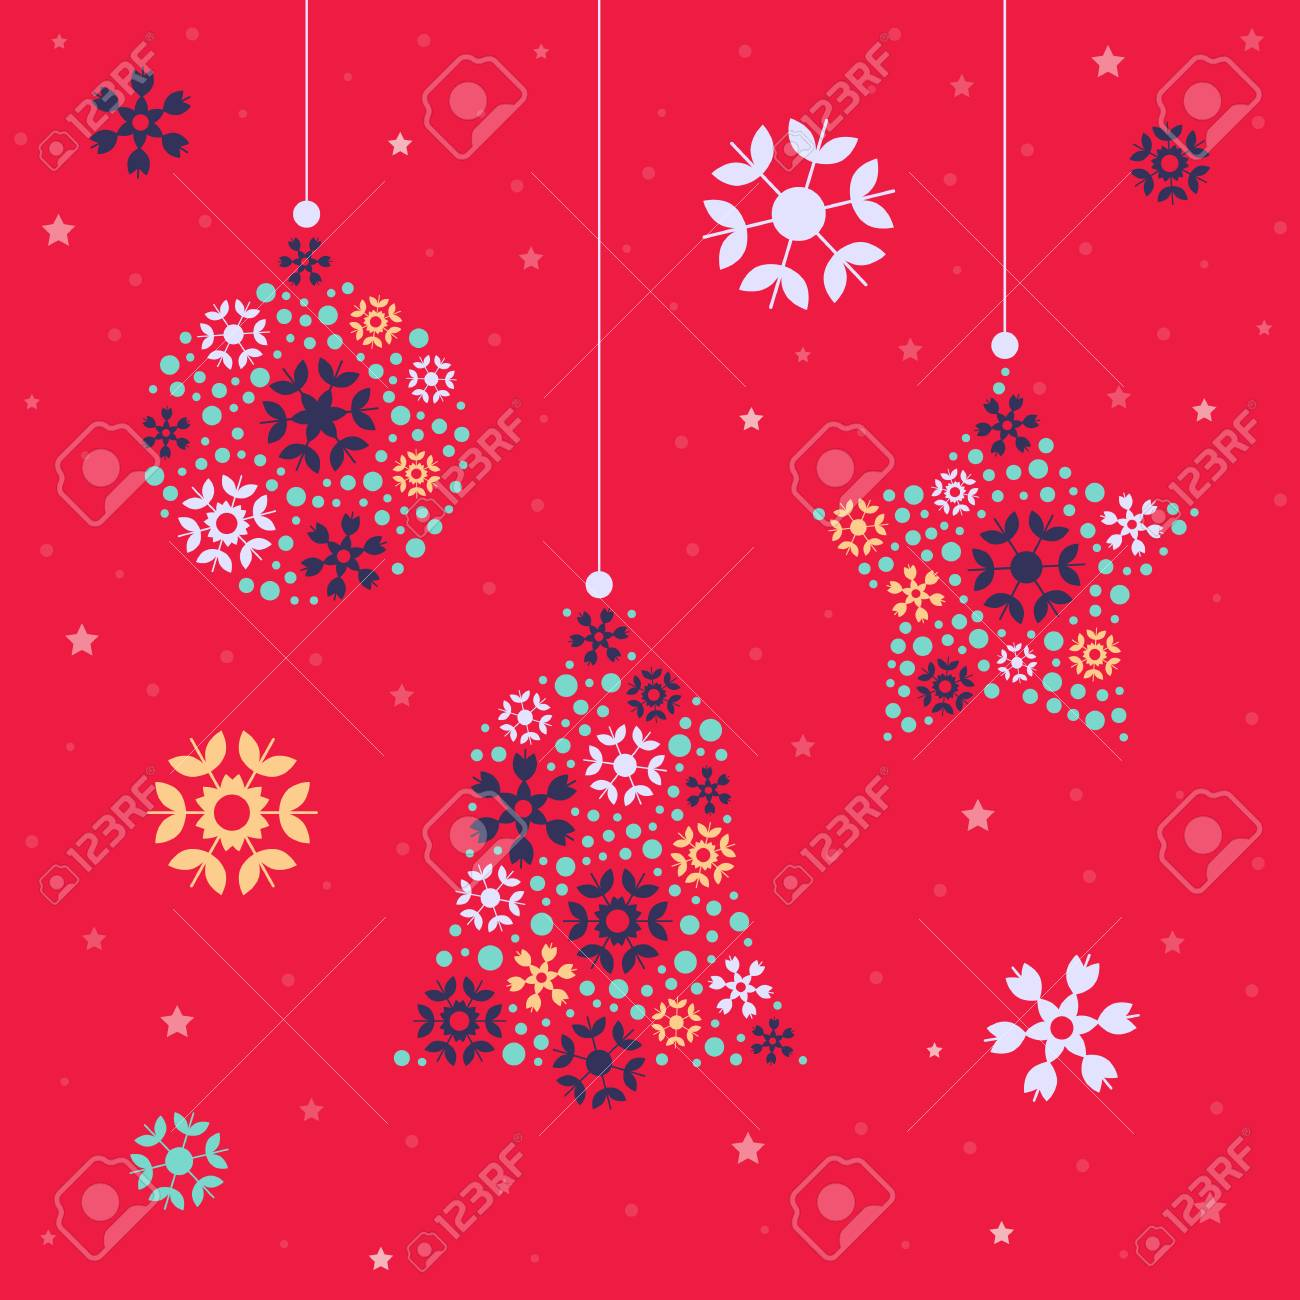 Christmas Card Template With Christmas Decorations Made Of Balls